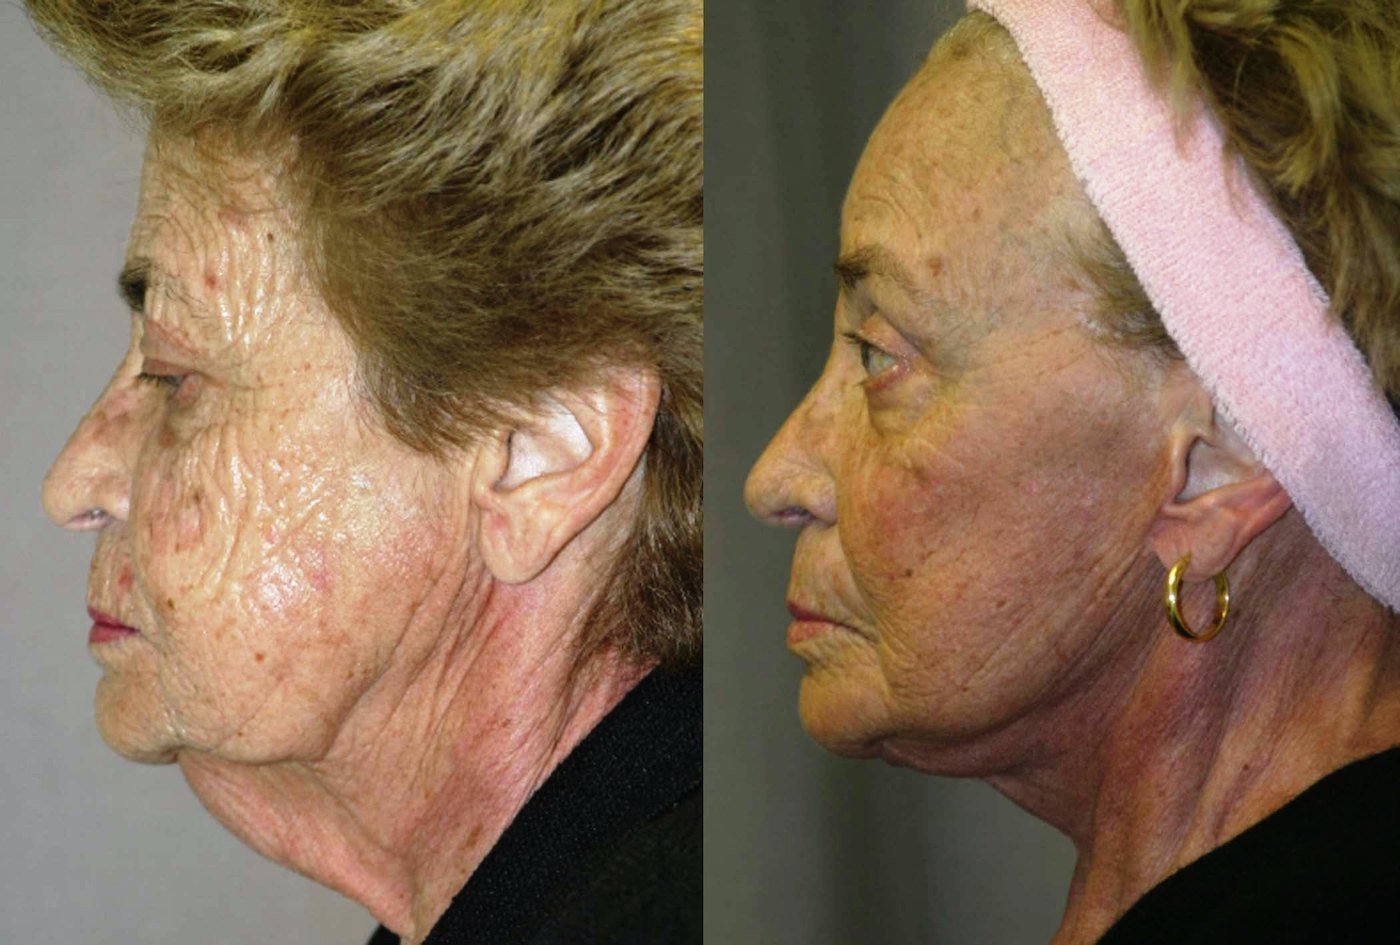 76 year old facelift, brow lift, upper and lower eye lift, one year follow-up, lateral view